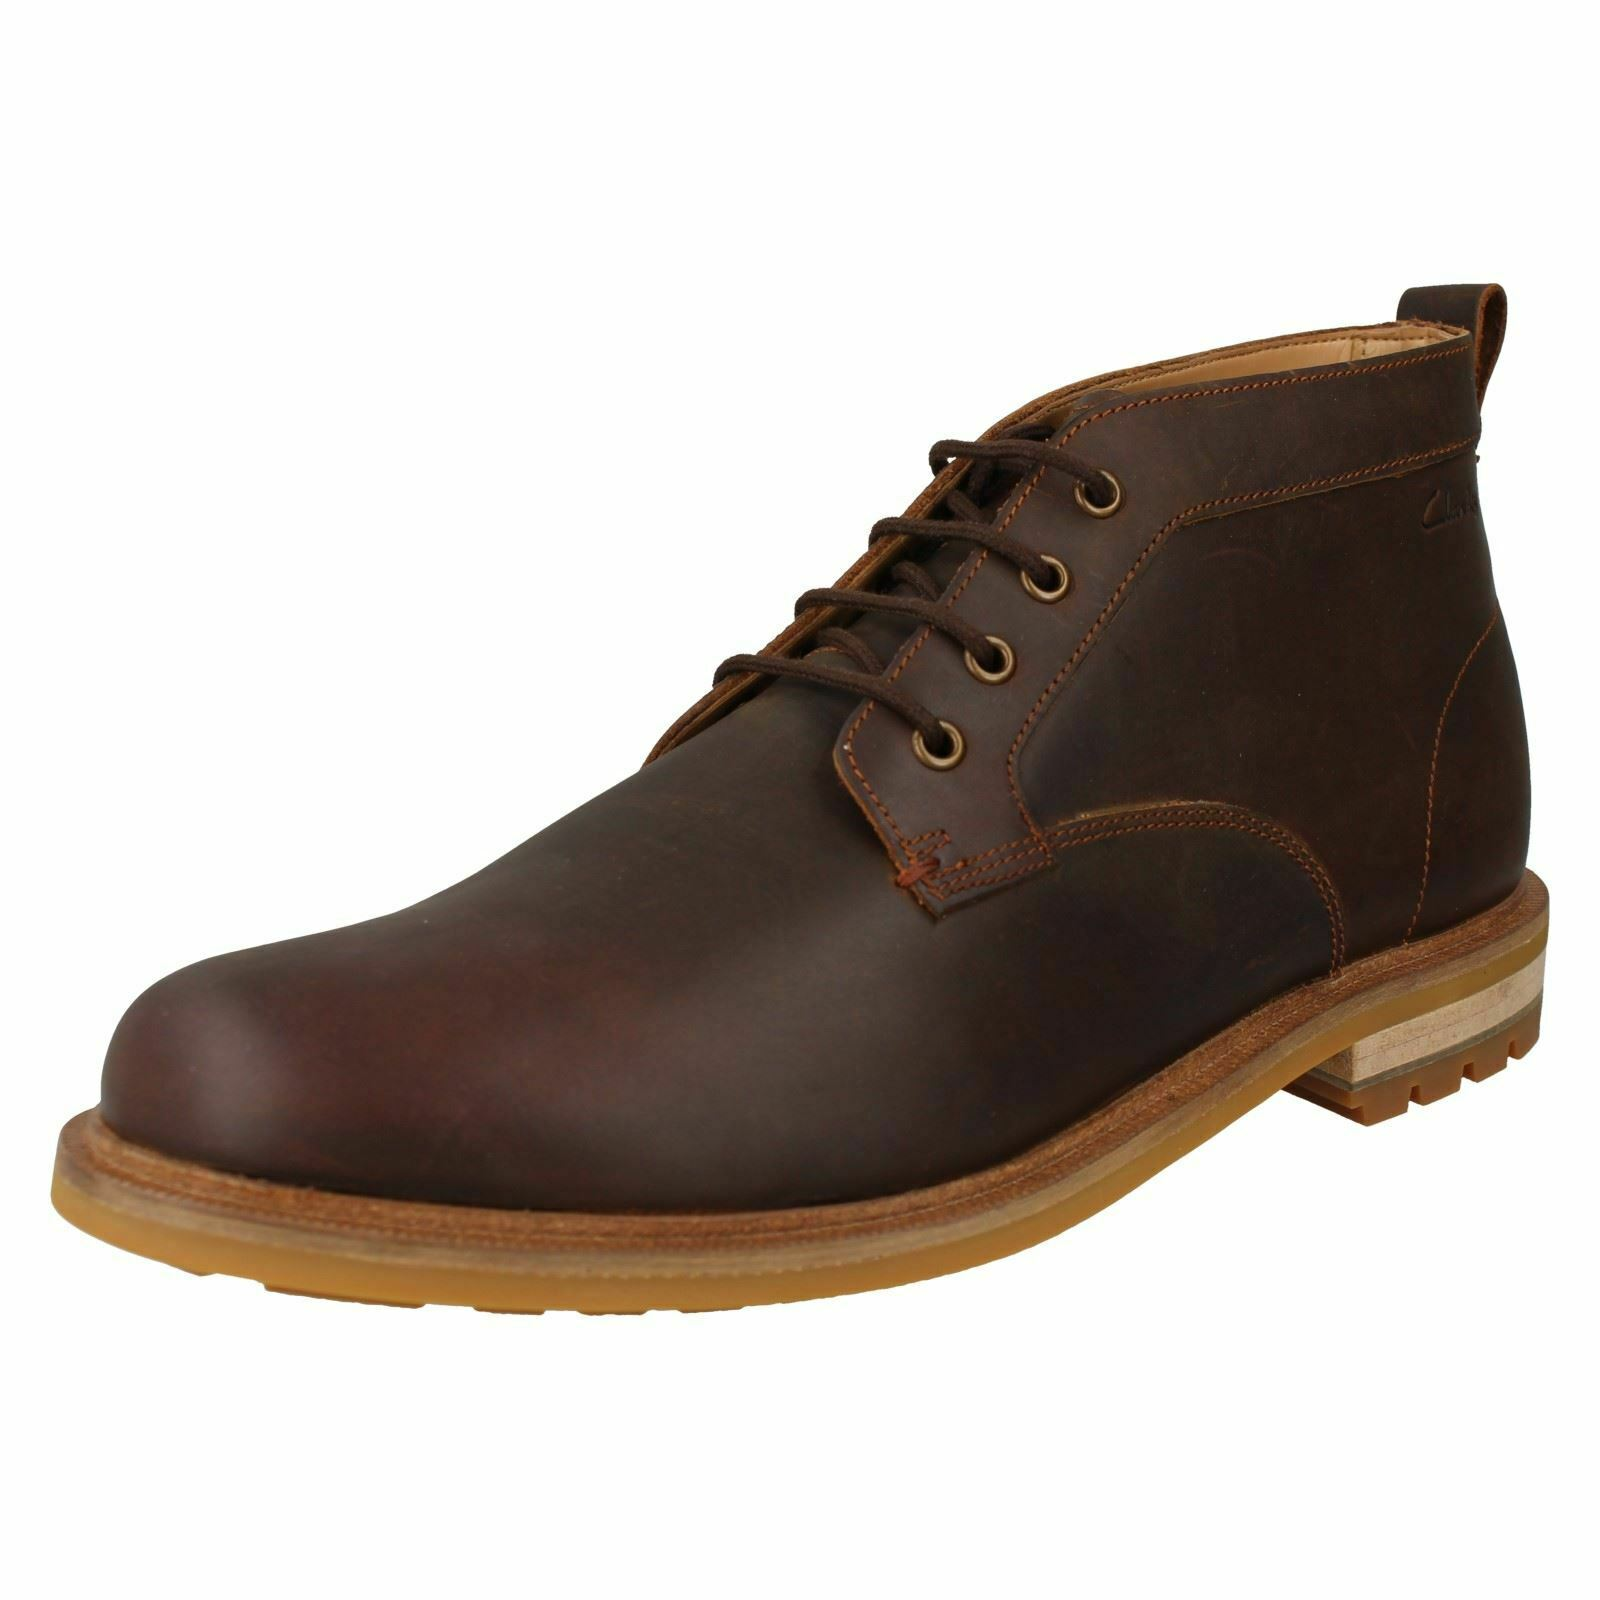 Mens Clarks Lace Up Casual Ankle Boots Foxwell Mid